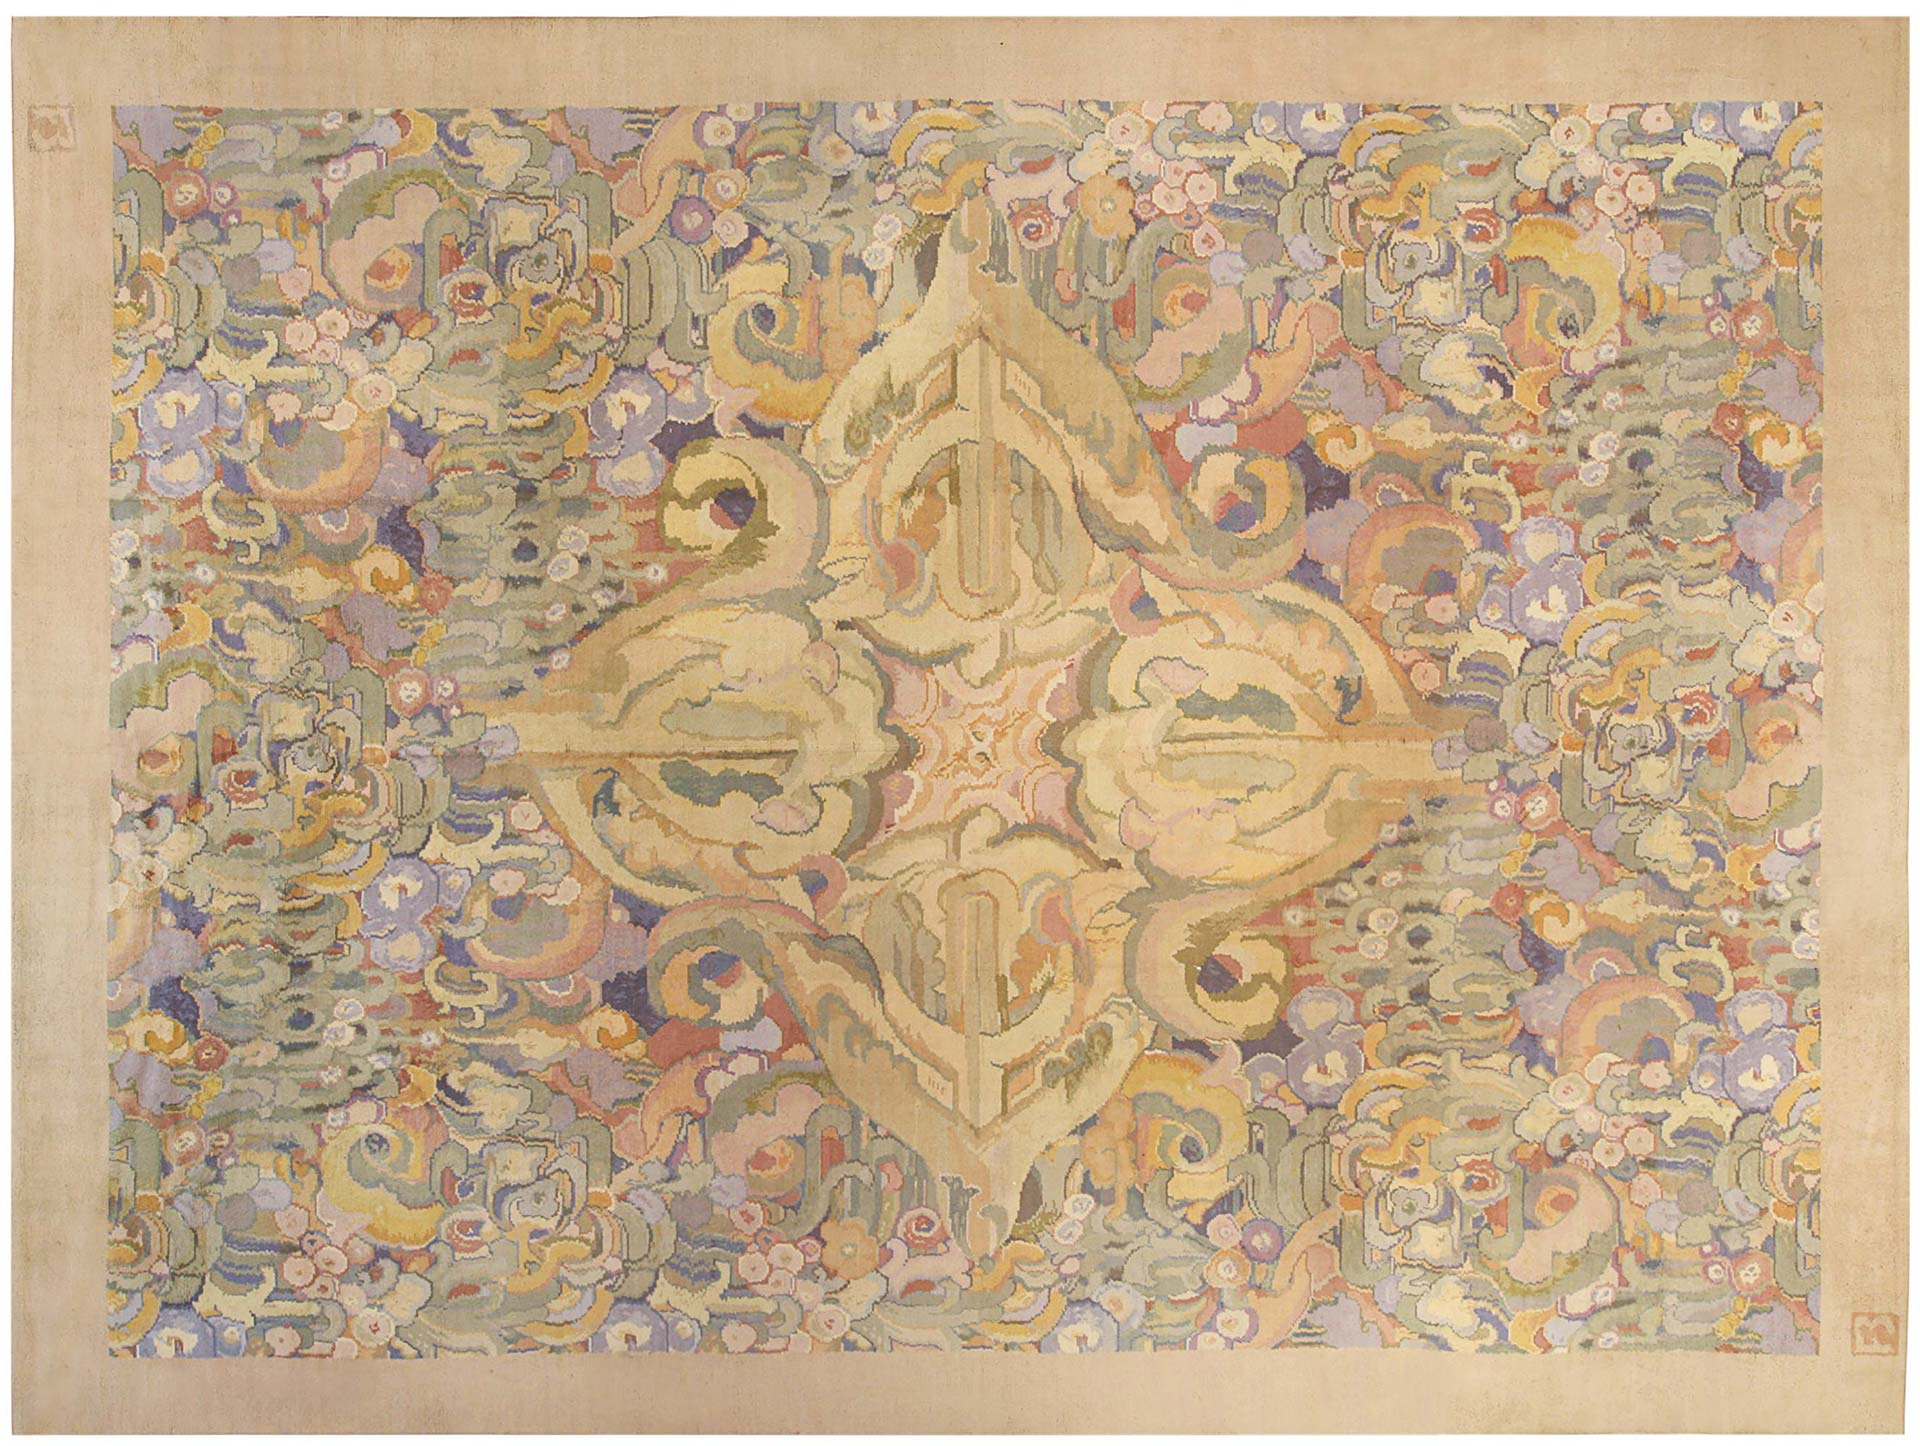 1930 Art Deco Rug by Sir Frank Brangwyn BB0106<BR> The largest of the three rugs available for sale at Doris Leslie Blau